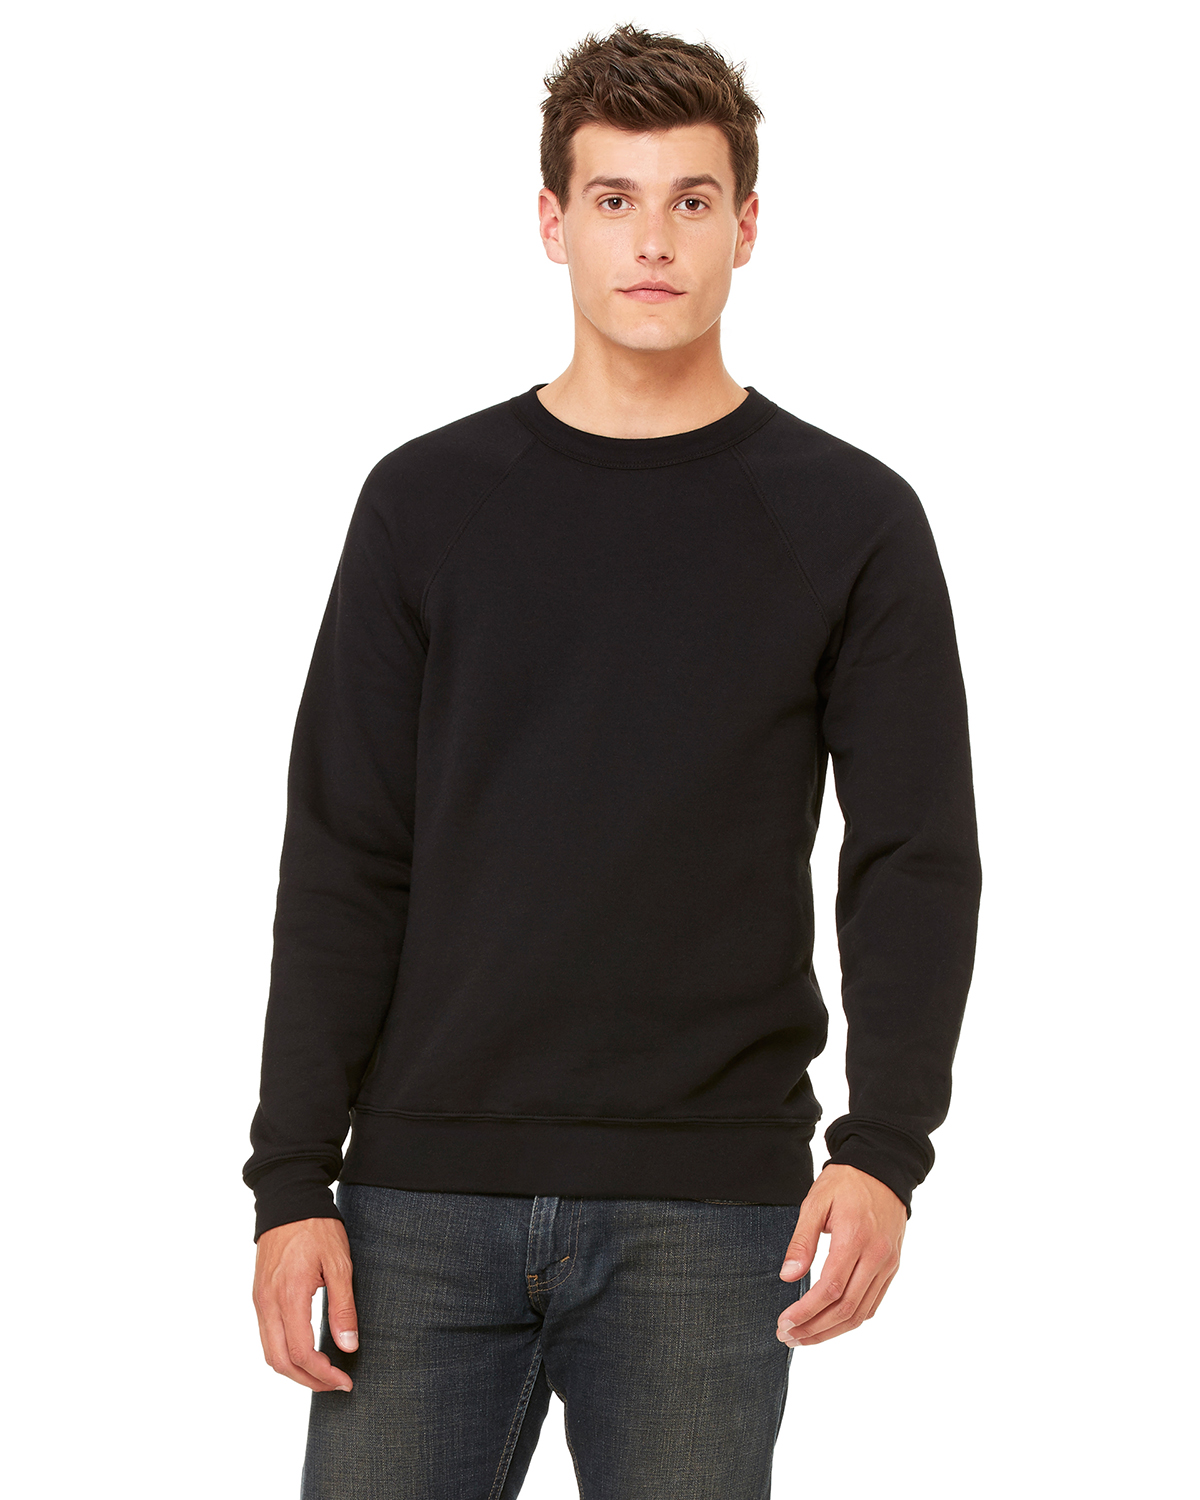 Bella + Canvas 3901 Unisex Sponge Fleece Crew Neck Sweatshirt Black at GotApparel